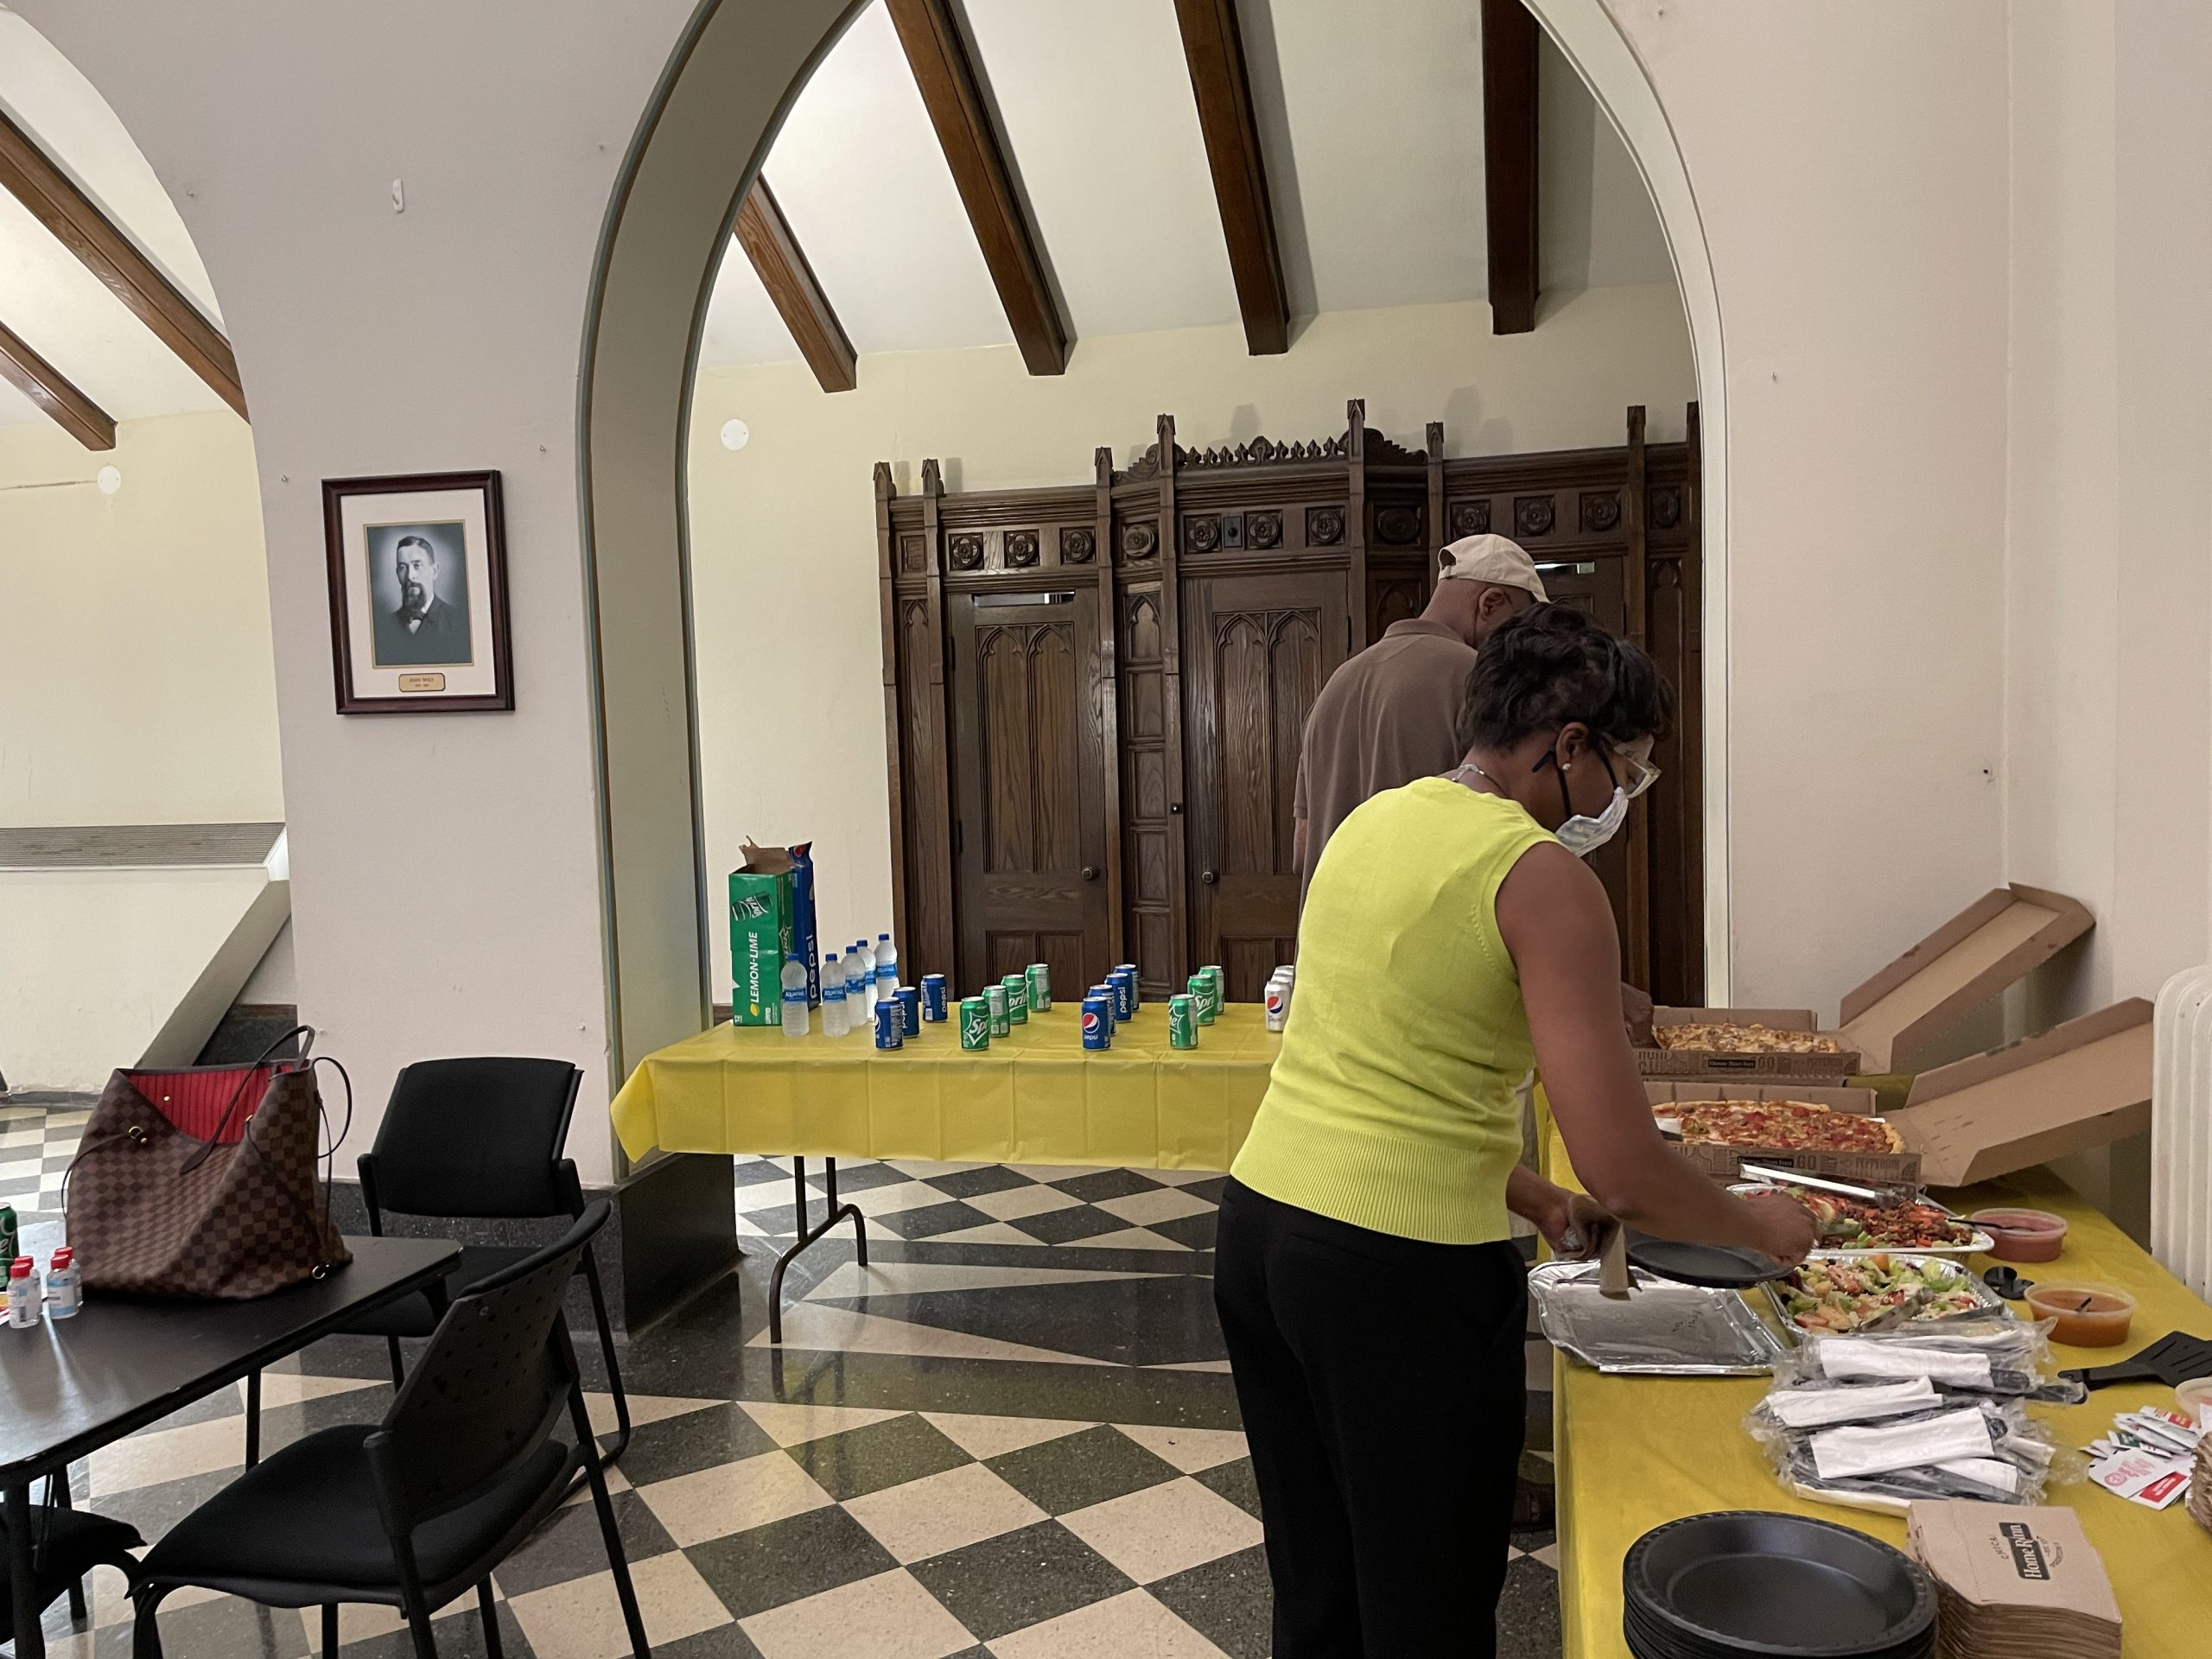 Home Run Inn donated a great lunch. Special thanks to Angela Thompson for facilitating the lunch.